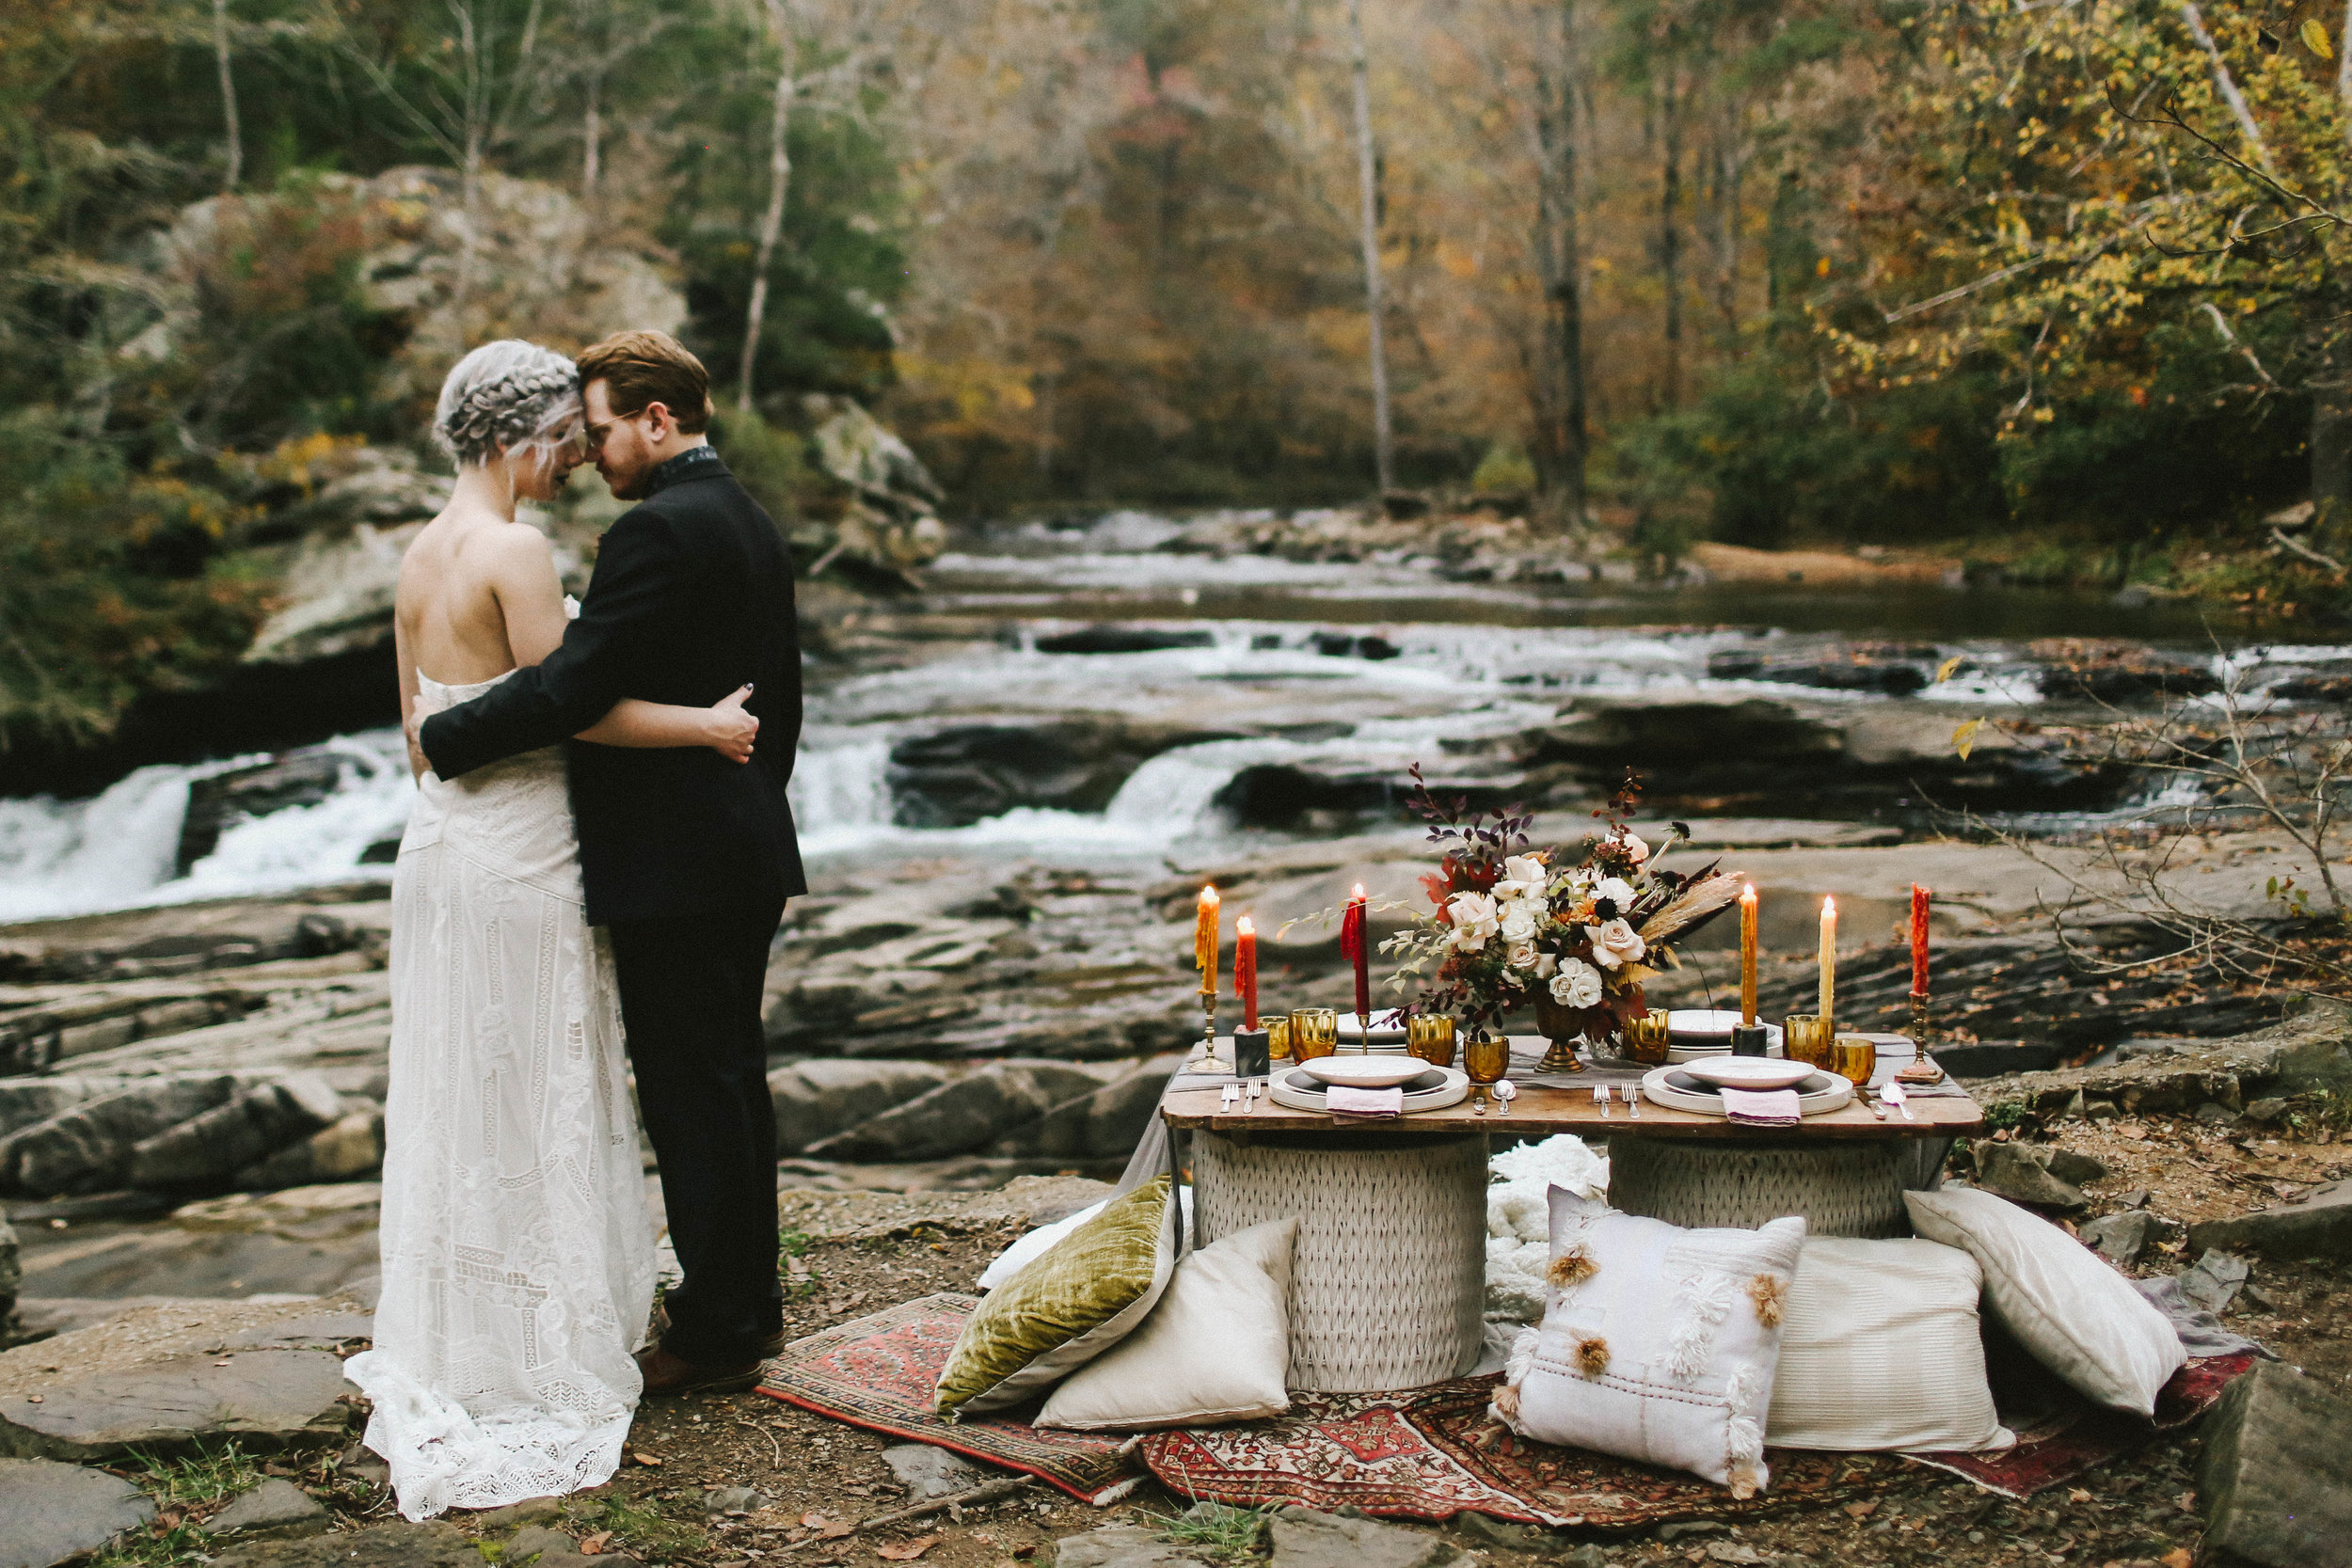 Moody Autumn Wedding Shoot - Fall Wedding Inspiration and Ideas